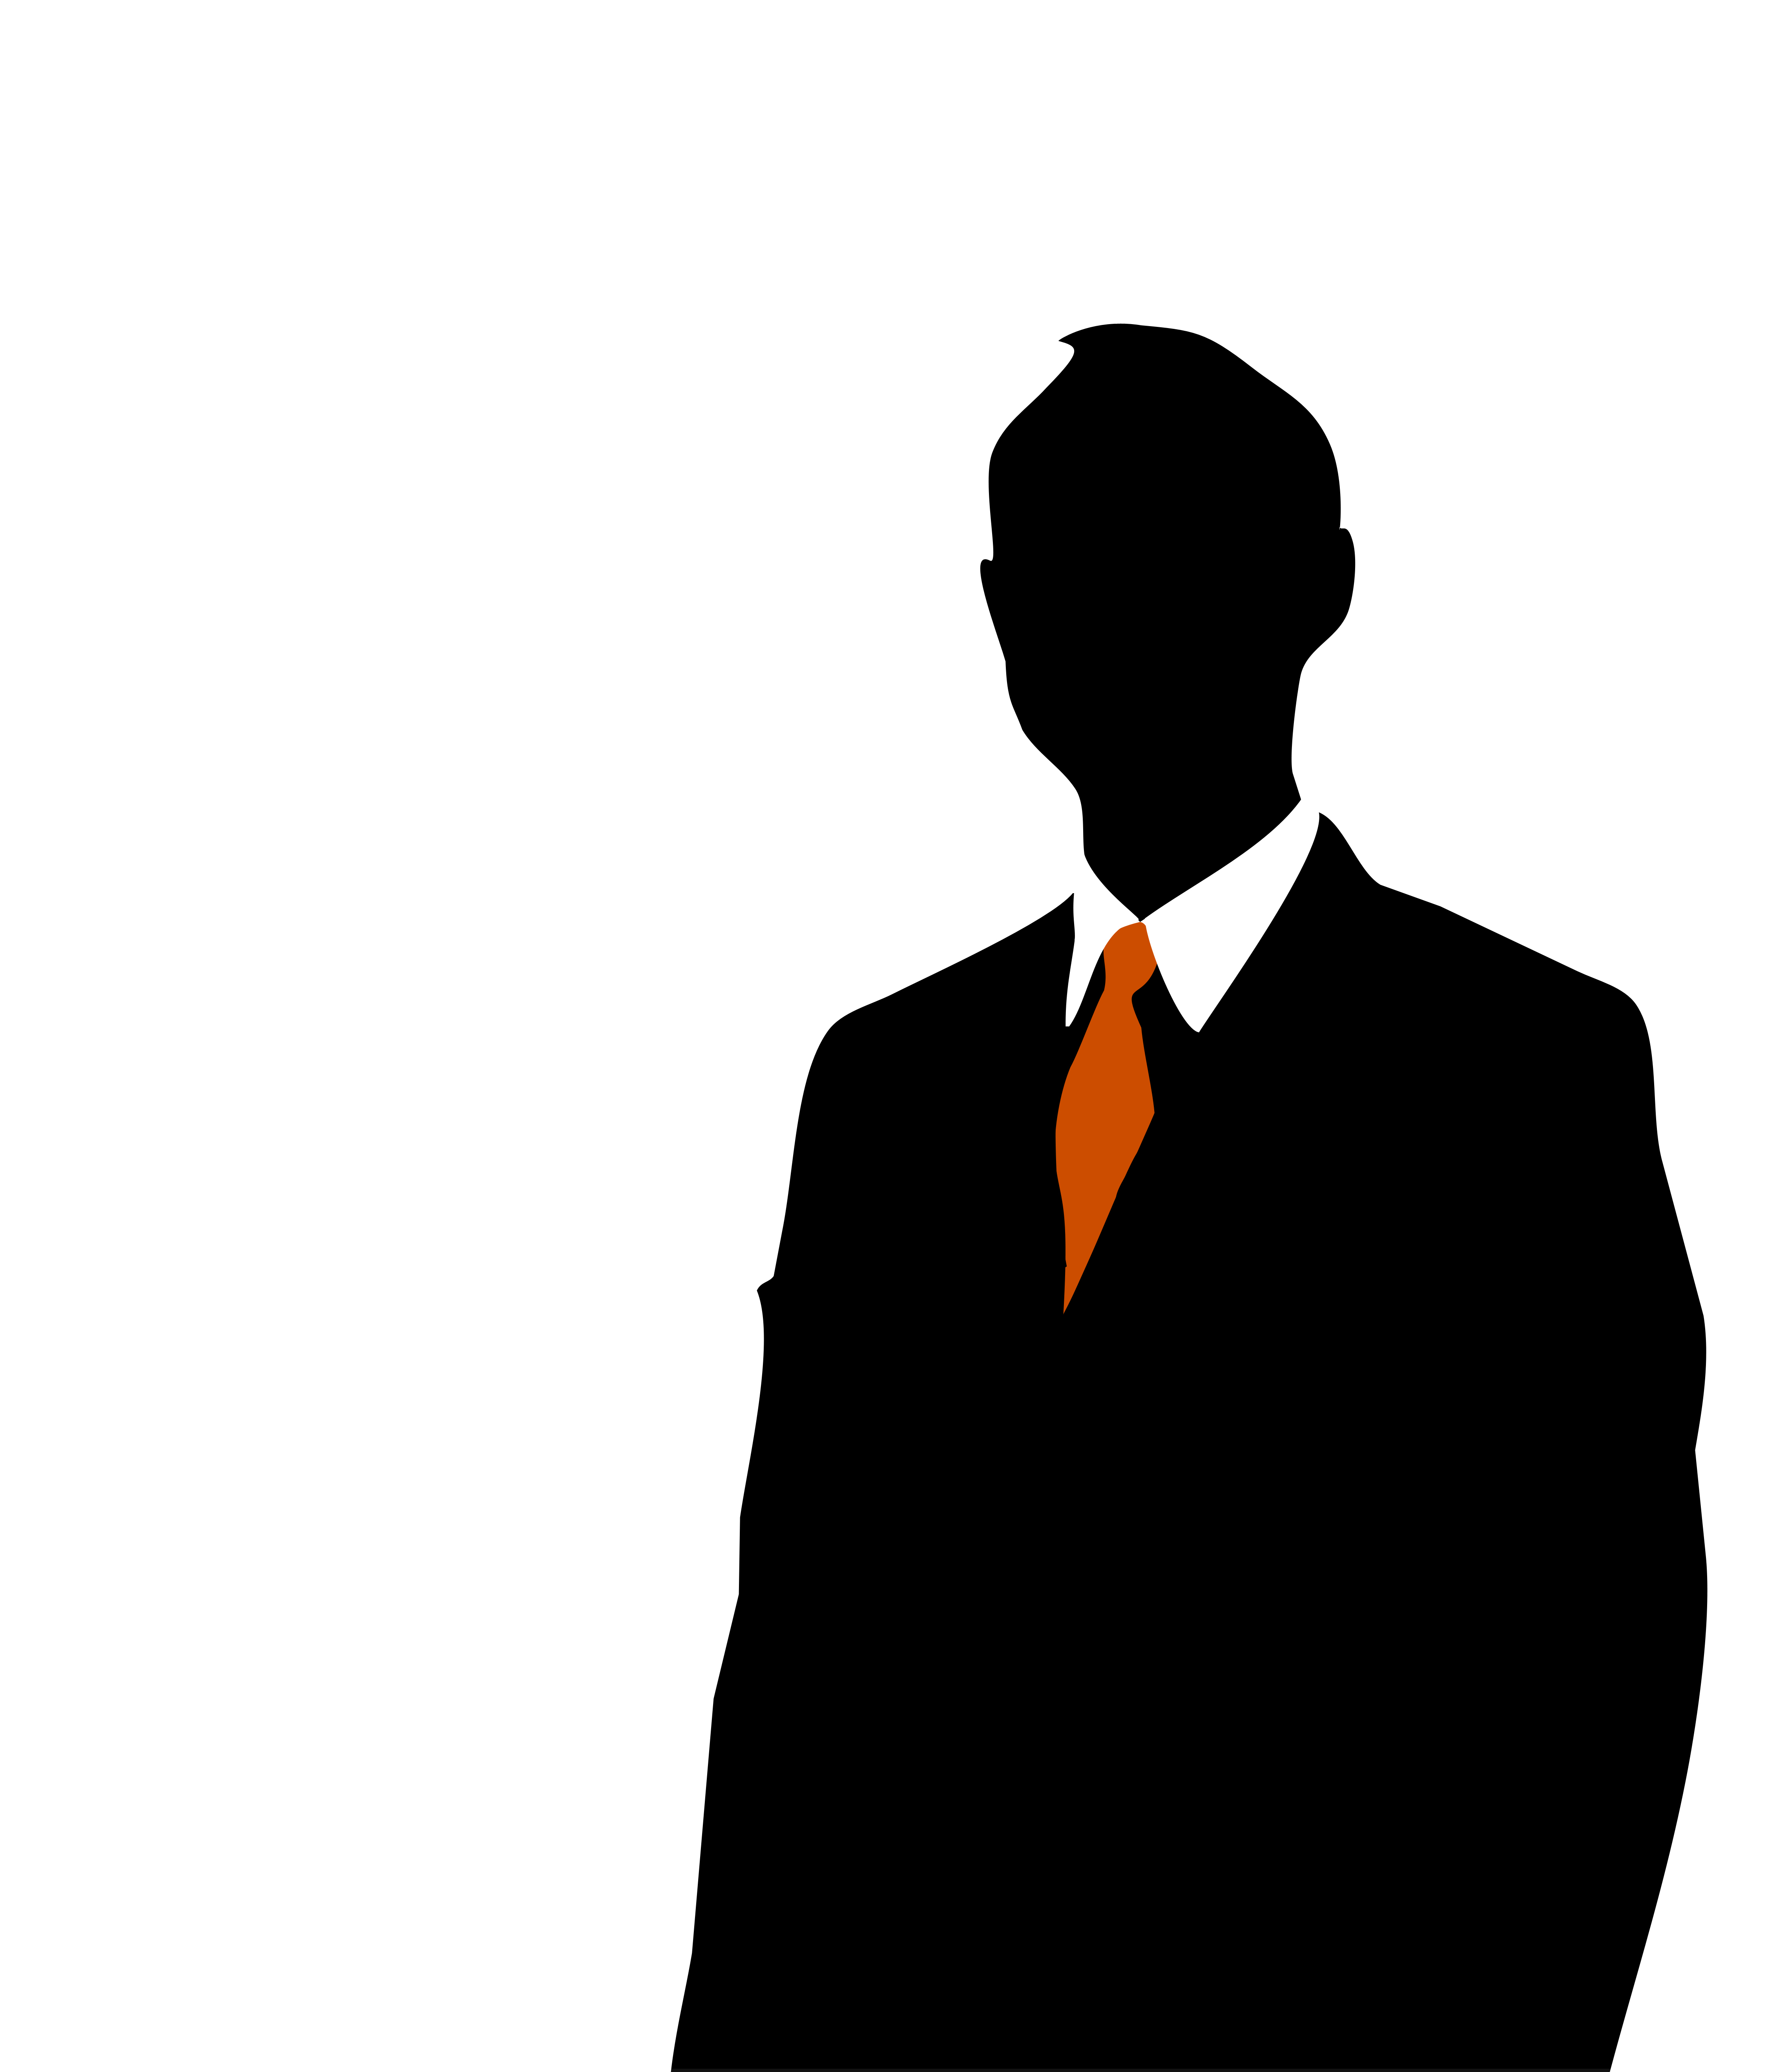 4500x5280 Clipart Silhouette Man And Woman